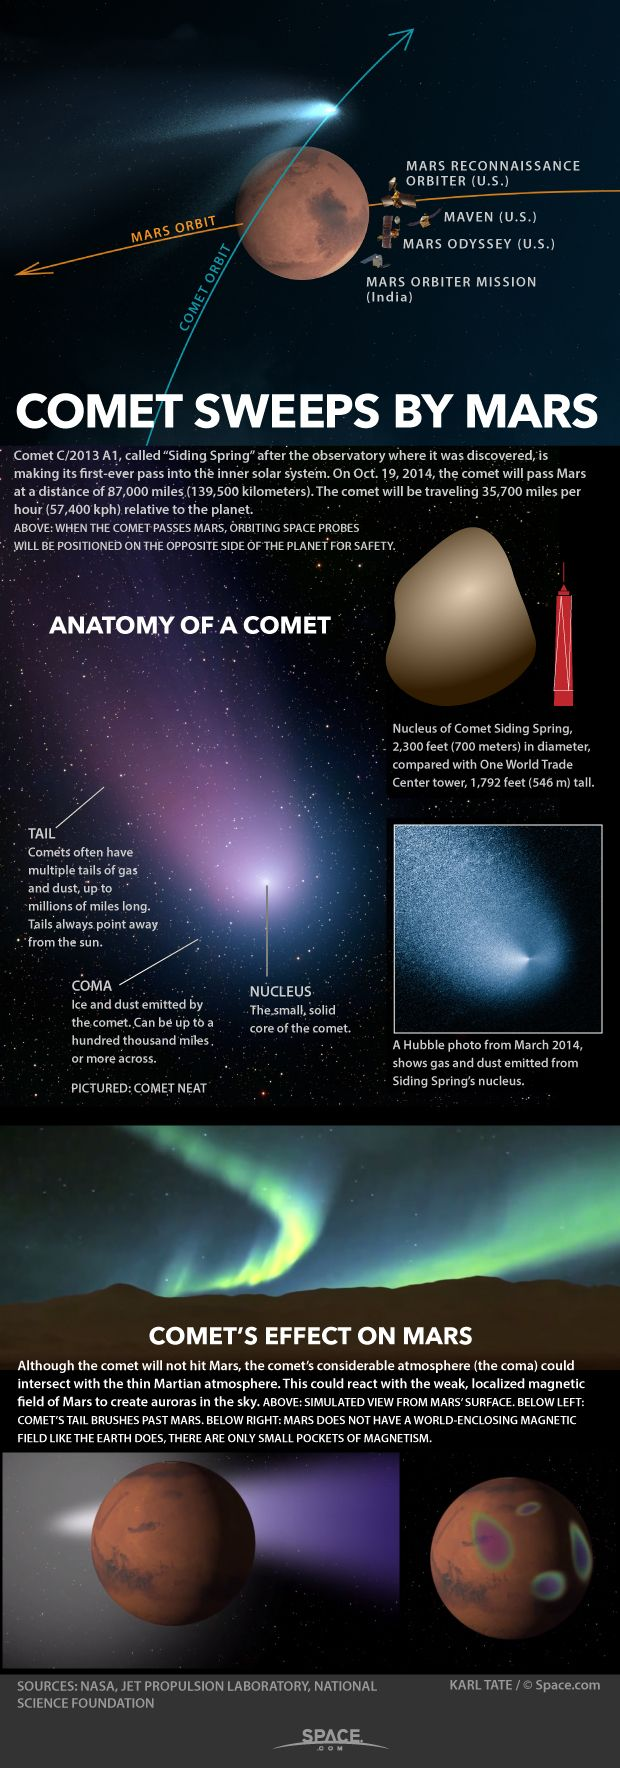 Comet Siding Spring (Comet C/2013 A1) : Flyby of Mars - credit for graphic : Karl Tate / Infographics artist